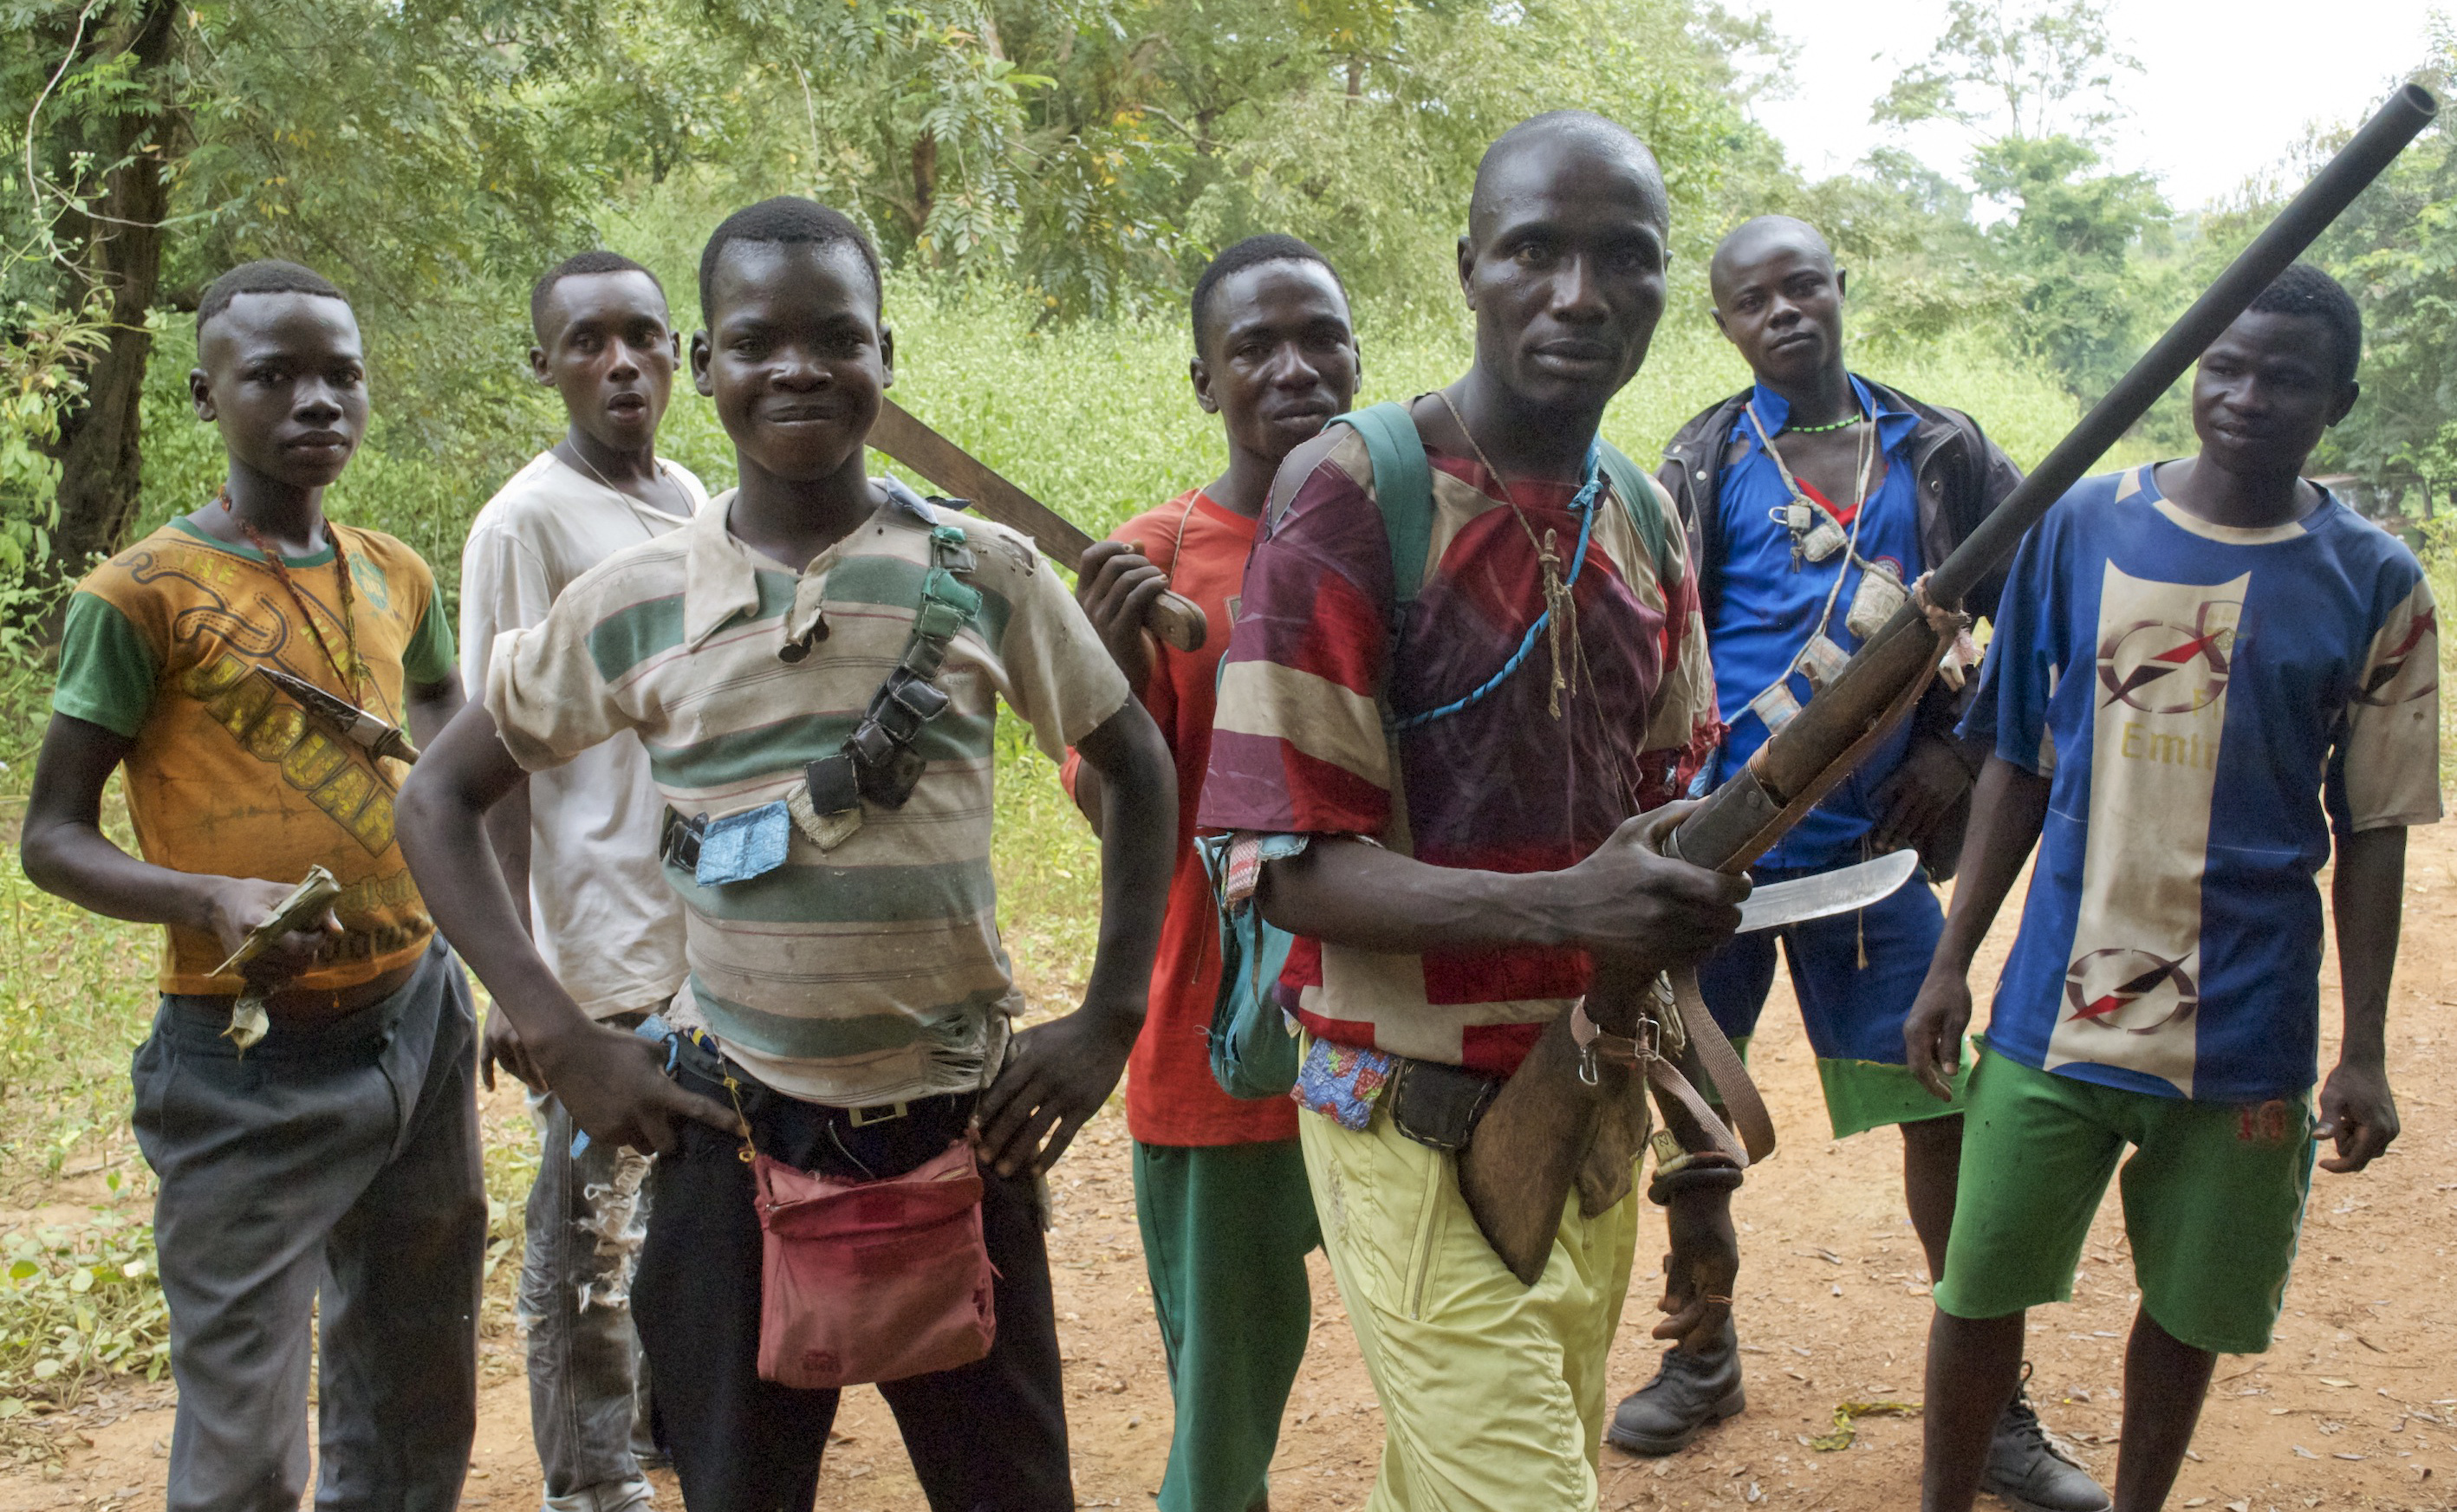 Fighters from a Christian militia known as the anti-balaka have emerged to defend towns and in some cases attack Muslim communities. These men display their makeshift weaponry in Boubou, Central African Republic, on Nov. 26. Florence Richard